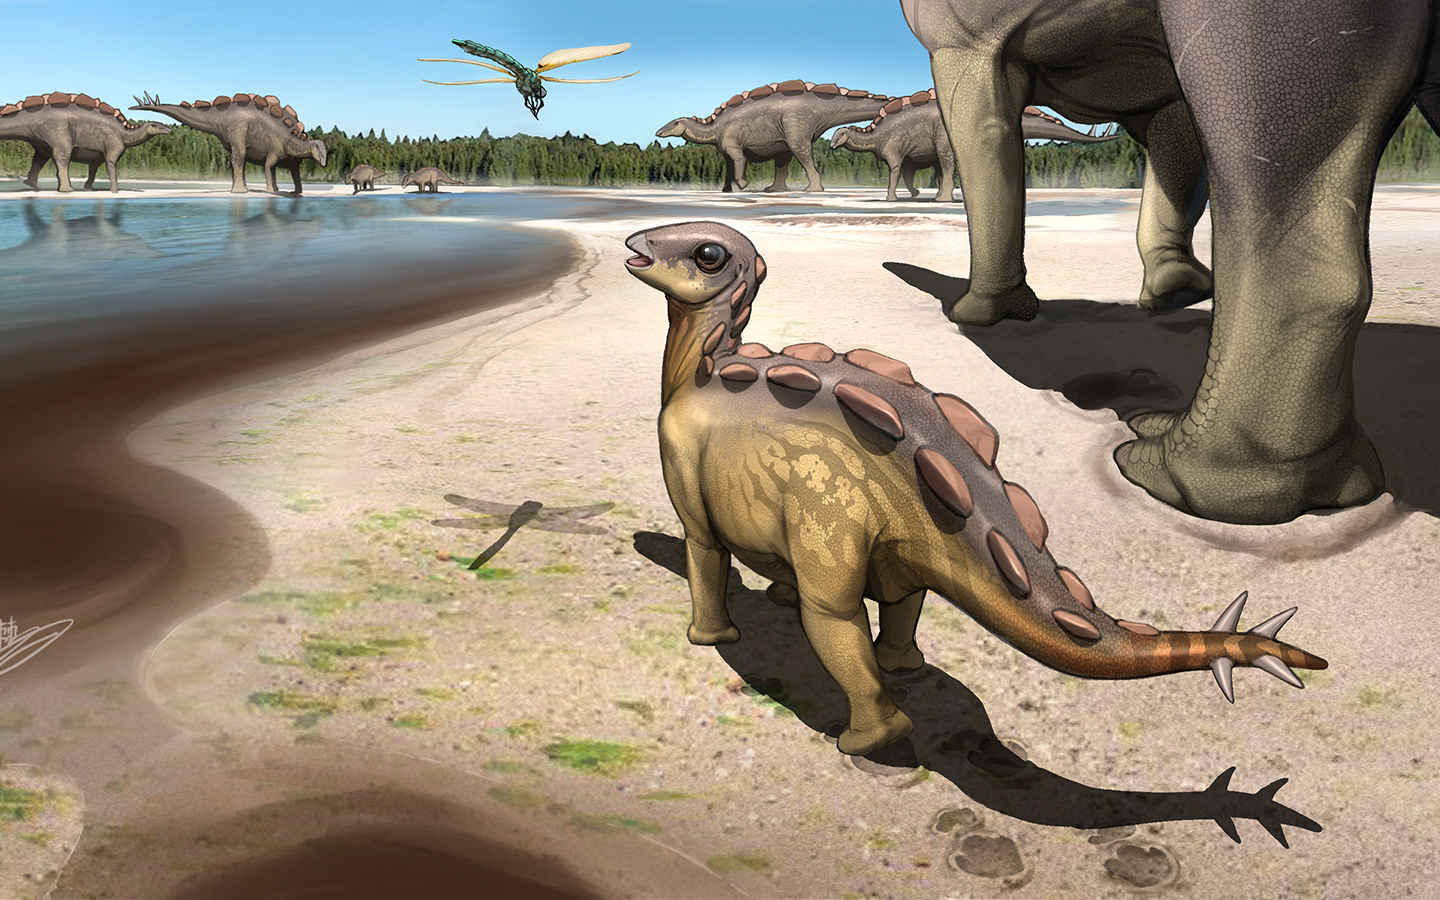 An illustration depicting what the juvenile stegosaur may have looked like in life